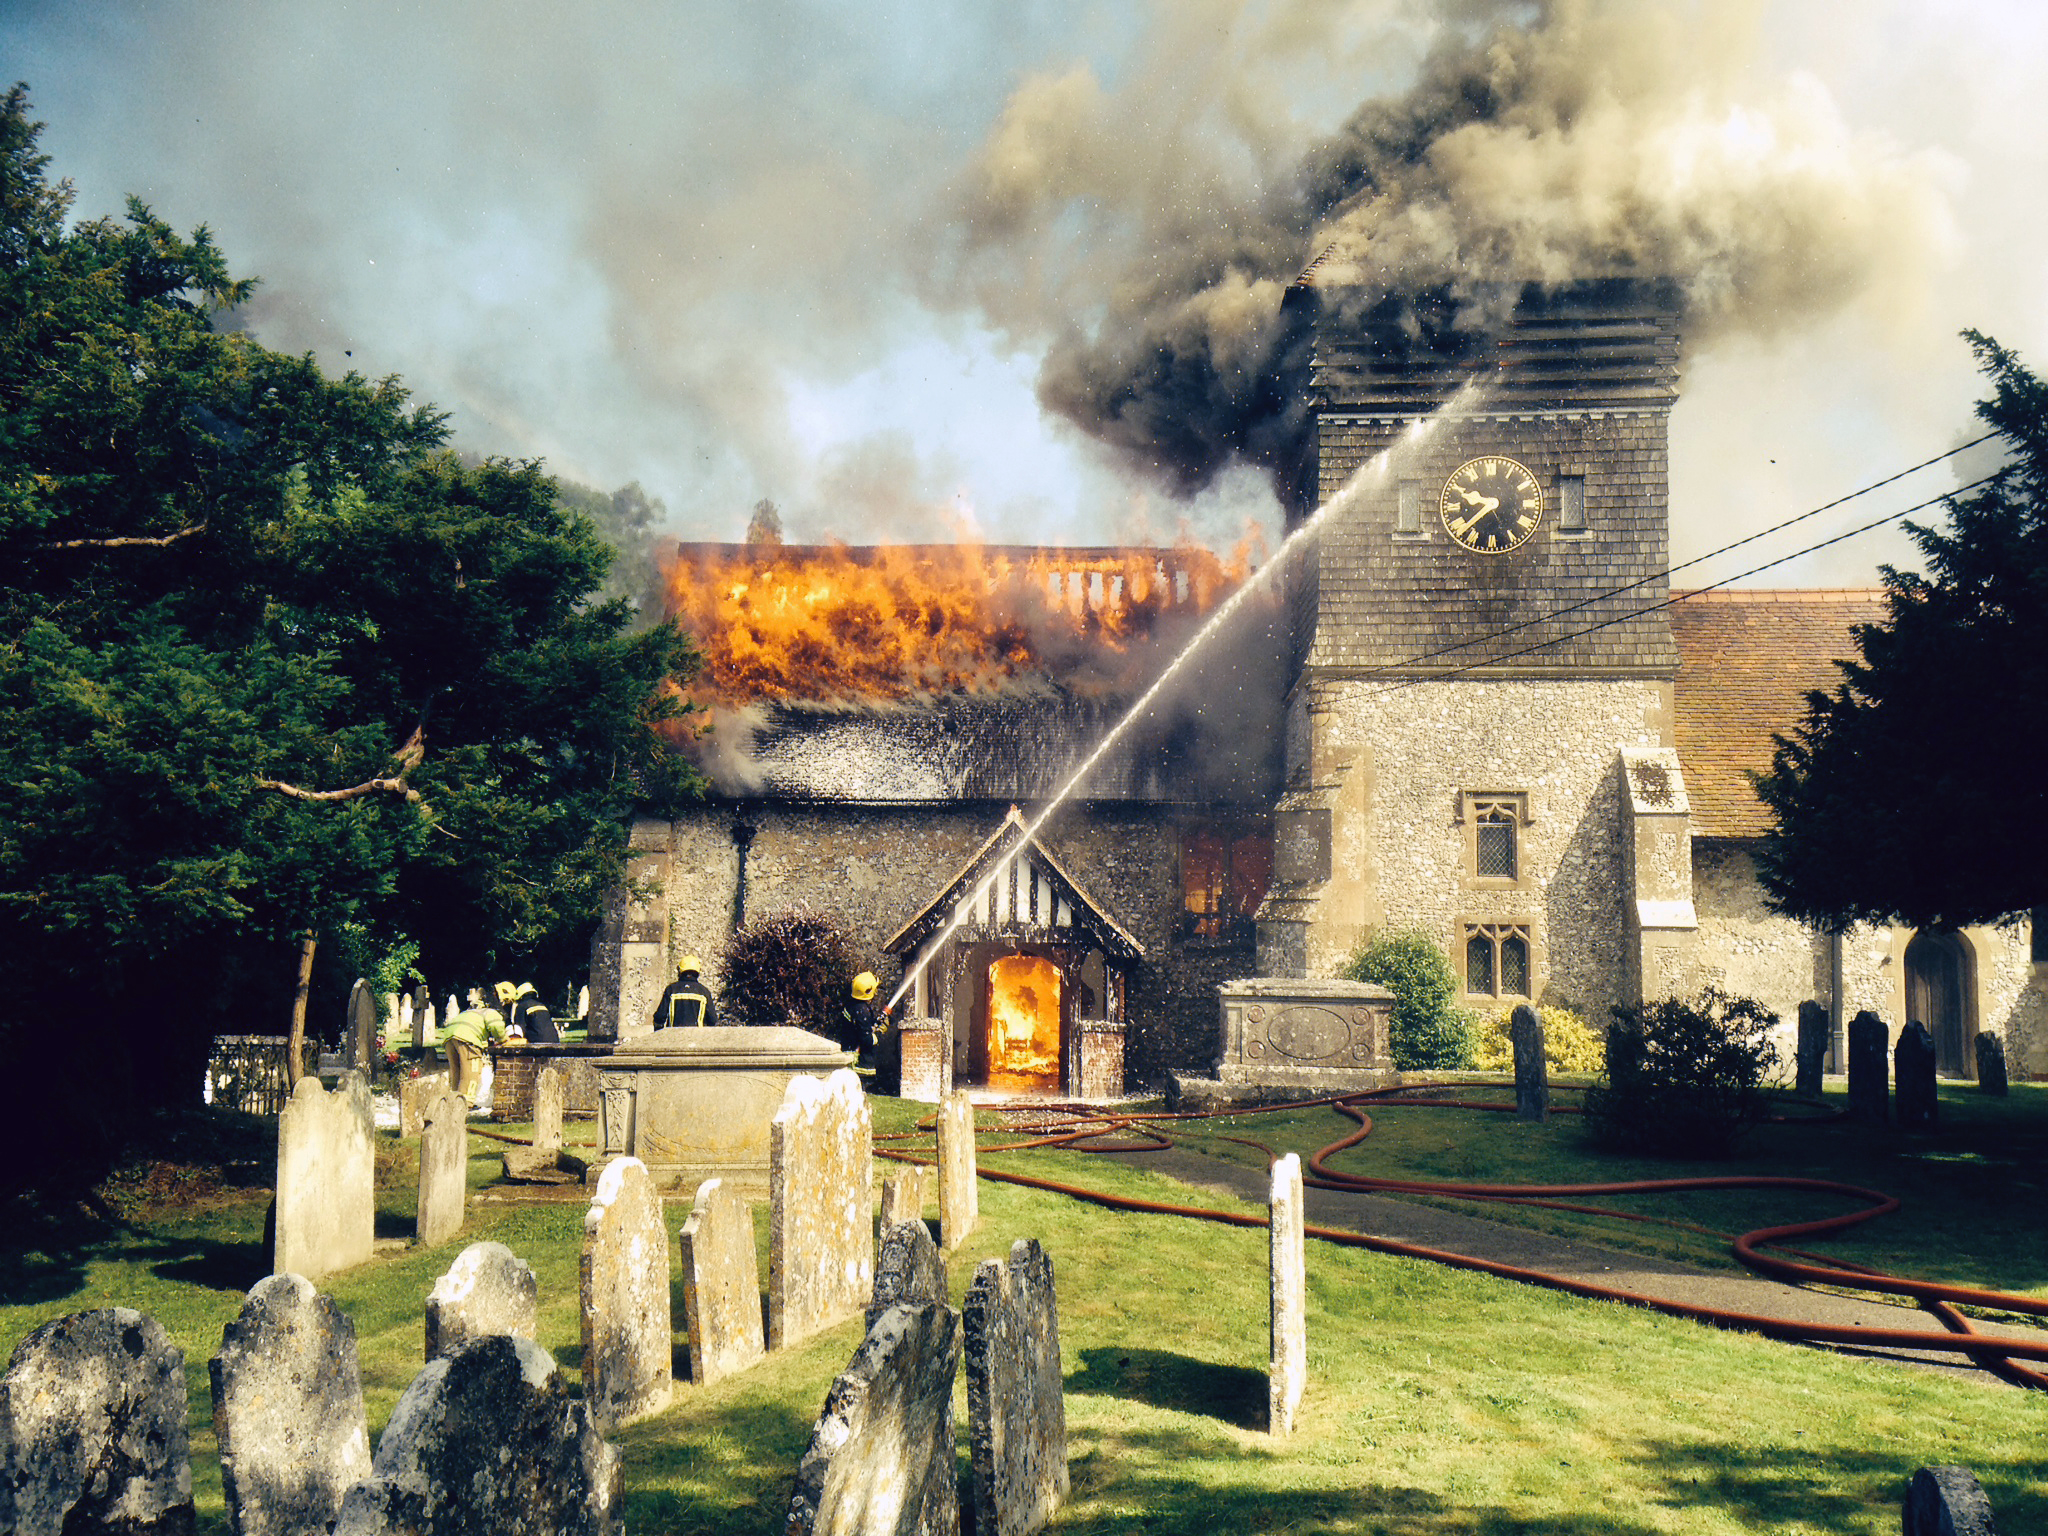 VIDEO: 80 firefighters battle medieval church fire